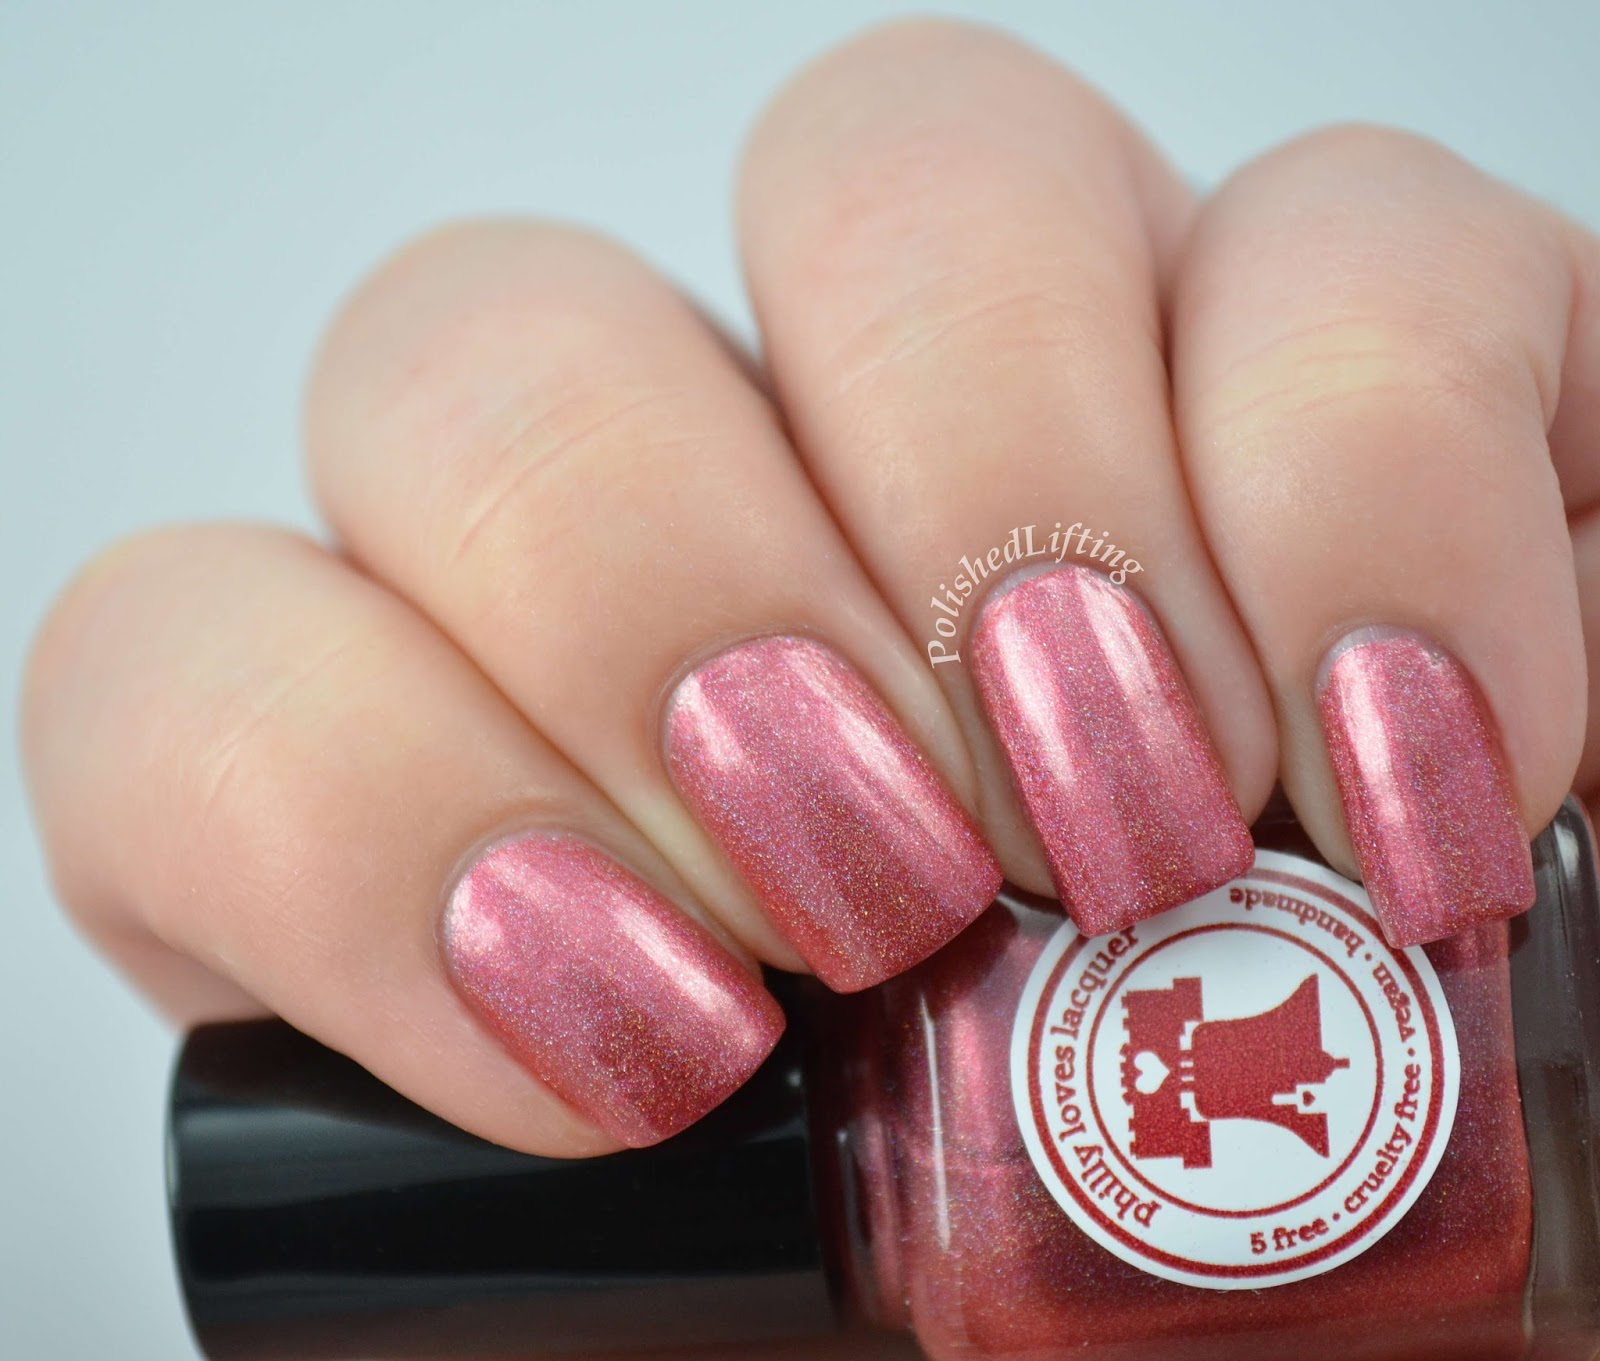 Philly Loves Lacquer S.C.